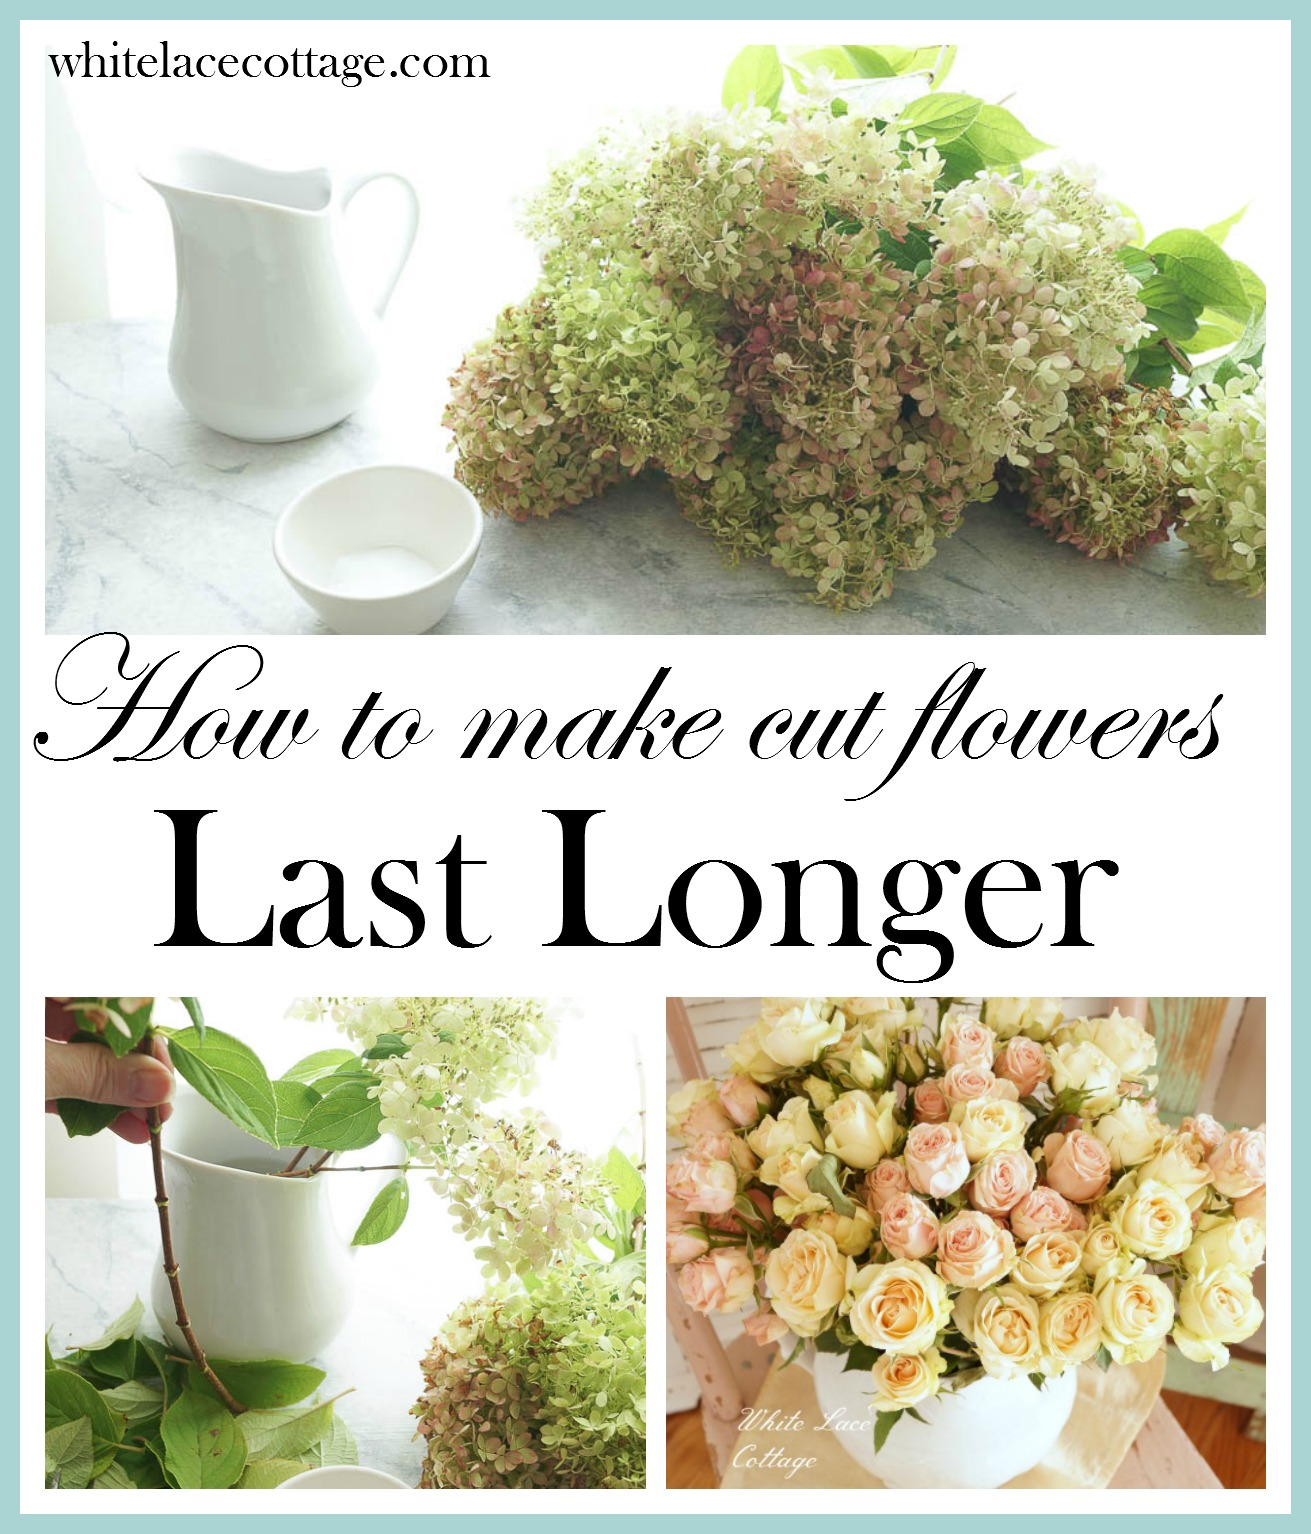 How to make cut flowers last longer white lace cottage - Ways to make your flowers last longer ...